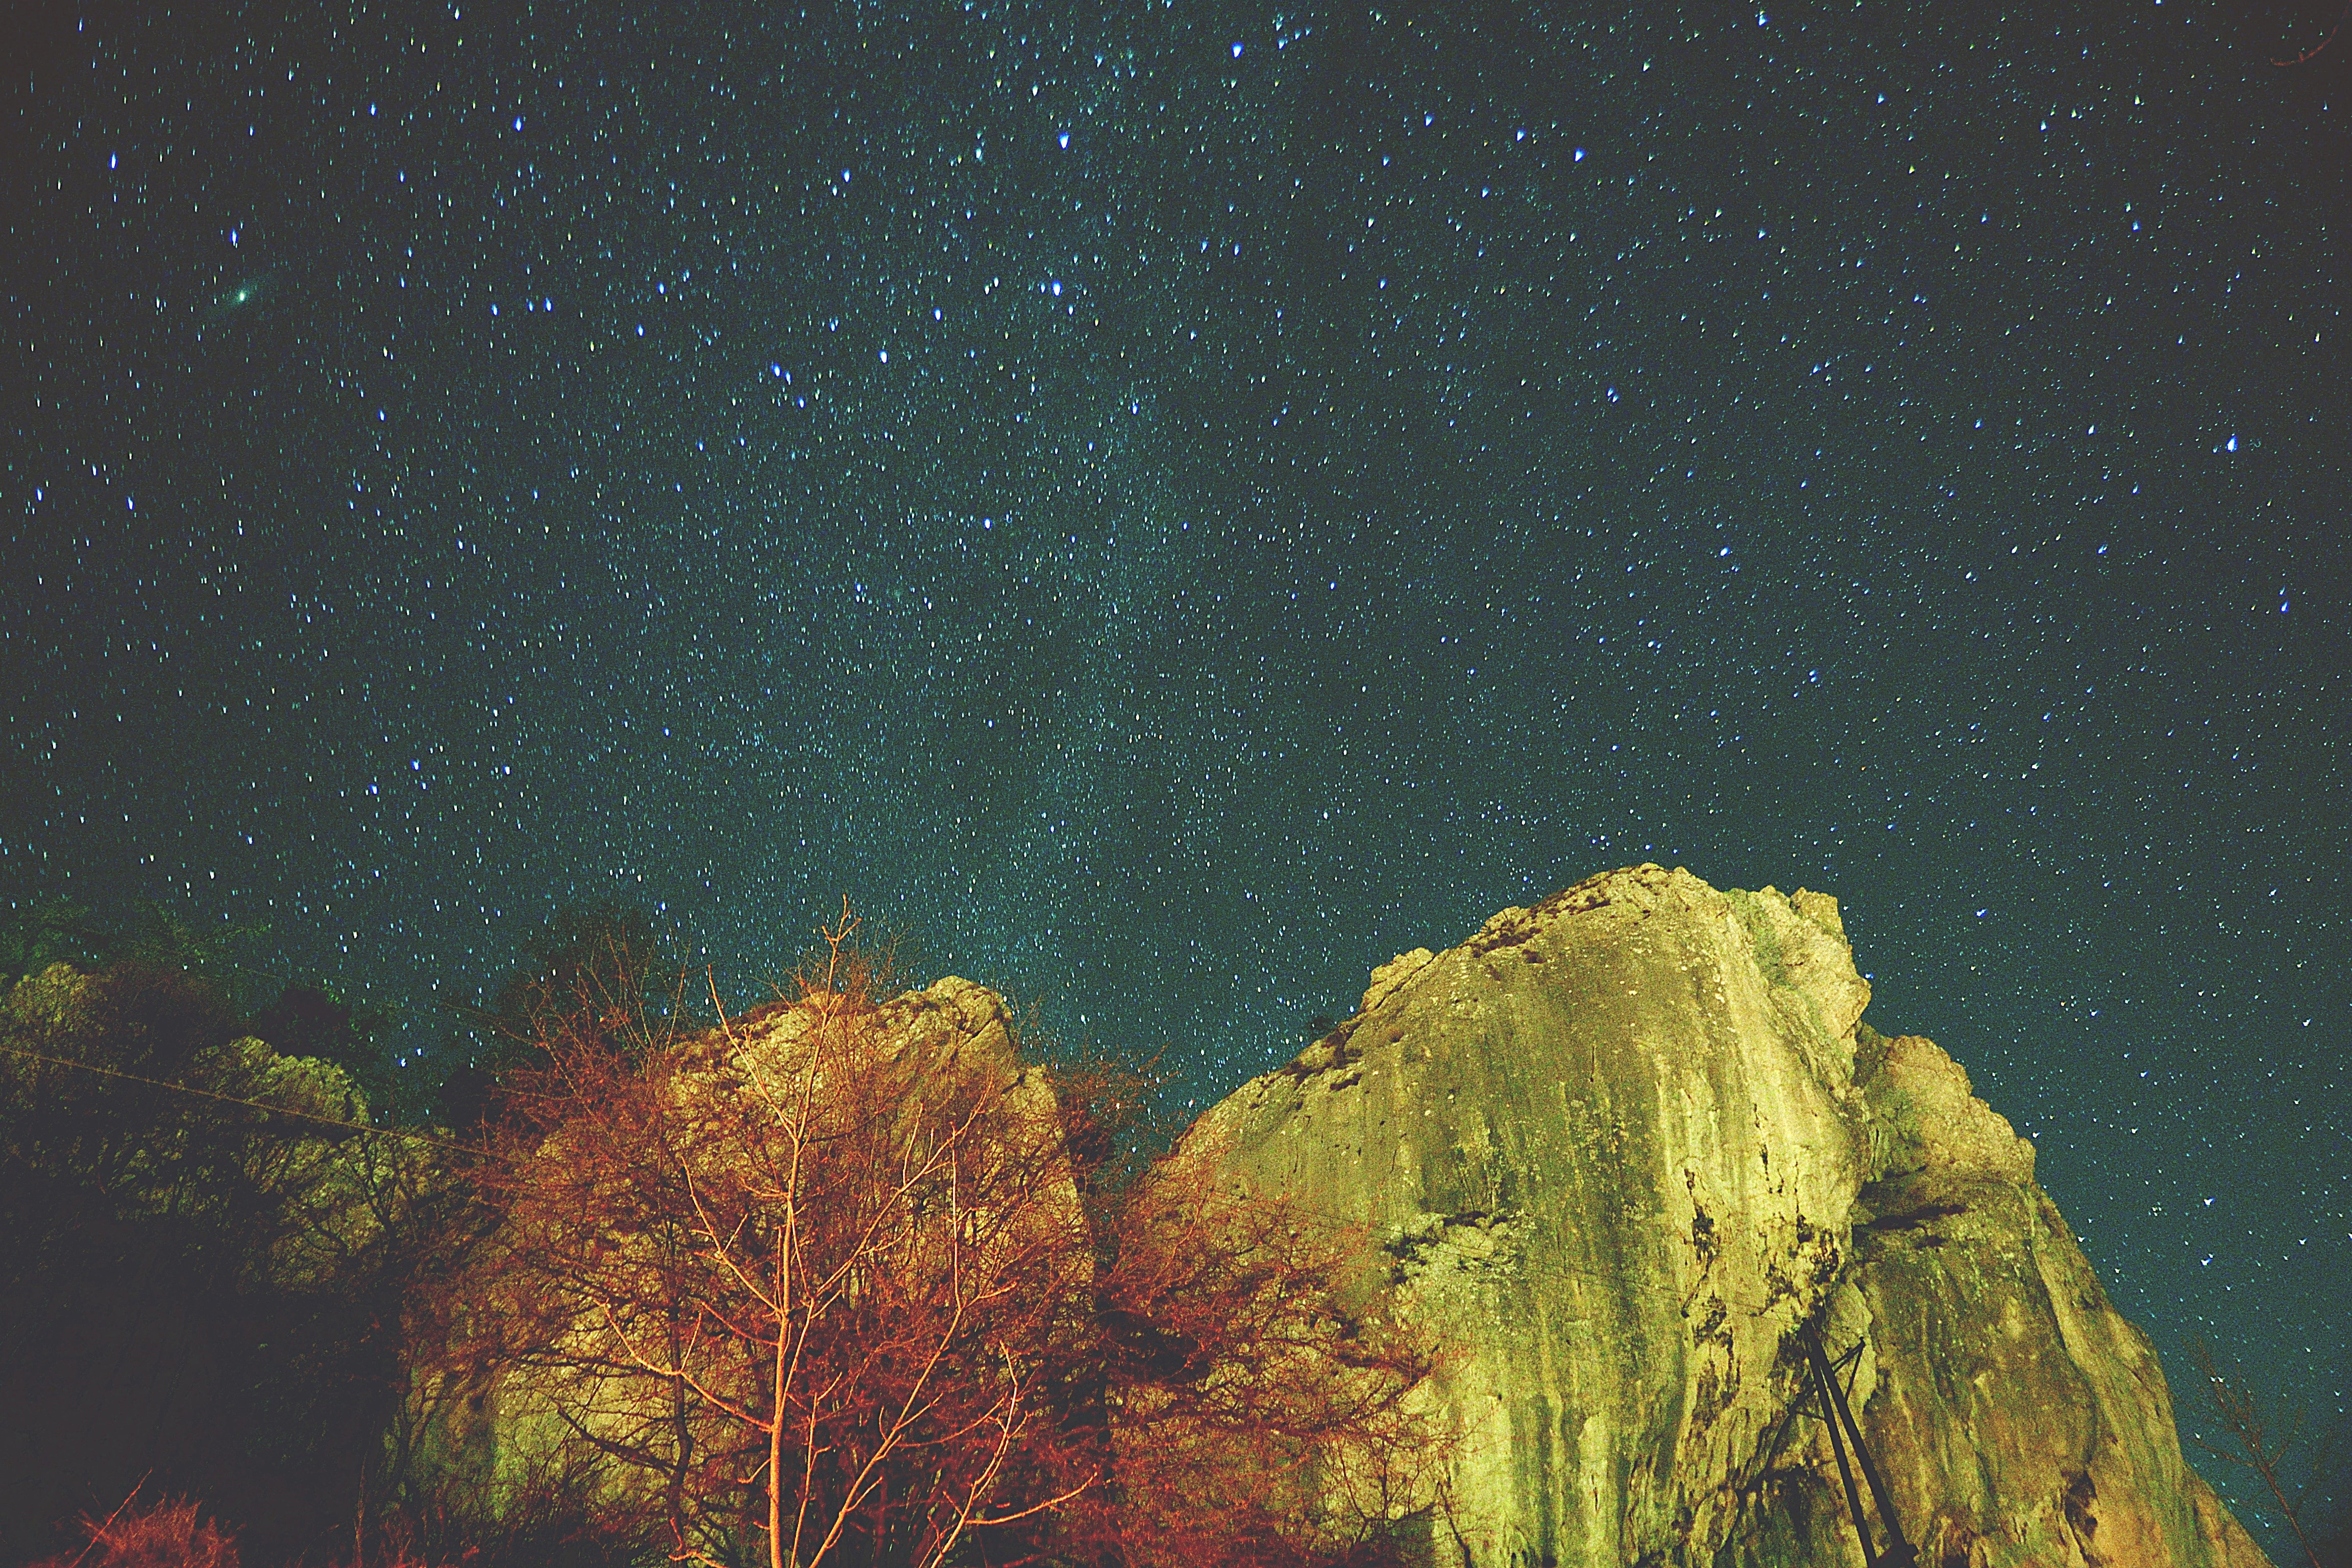 Rock formations next to a red tree with a night sky illuminated with stars